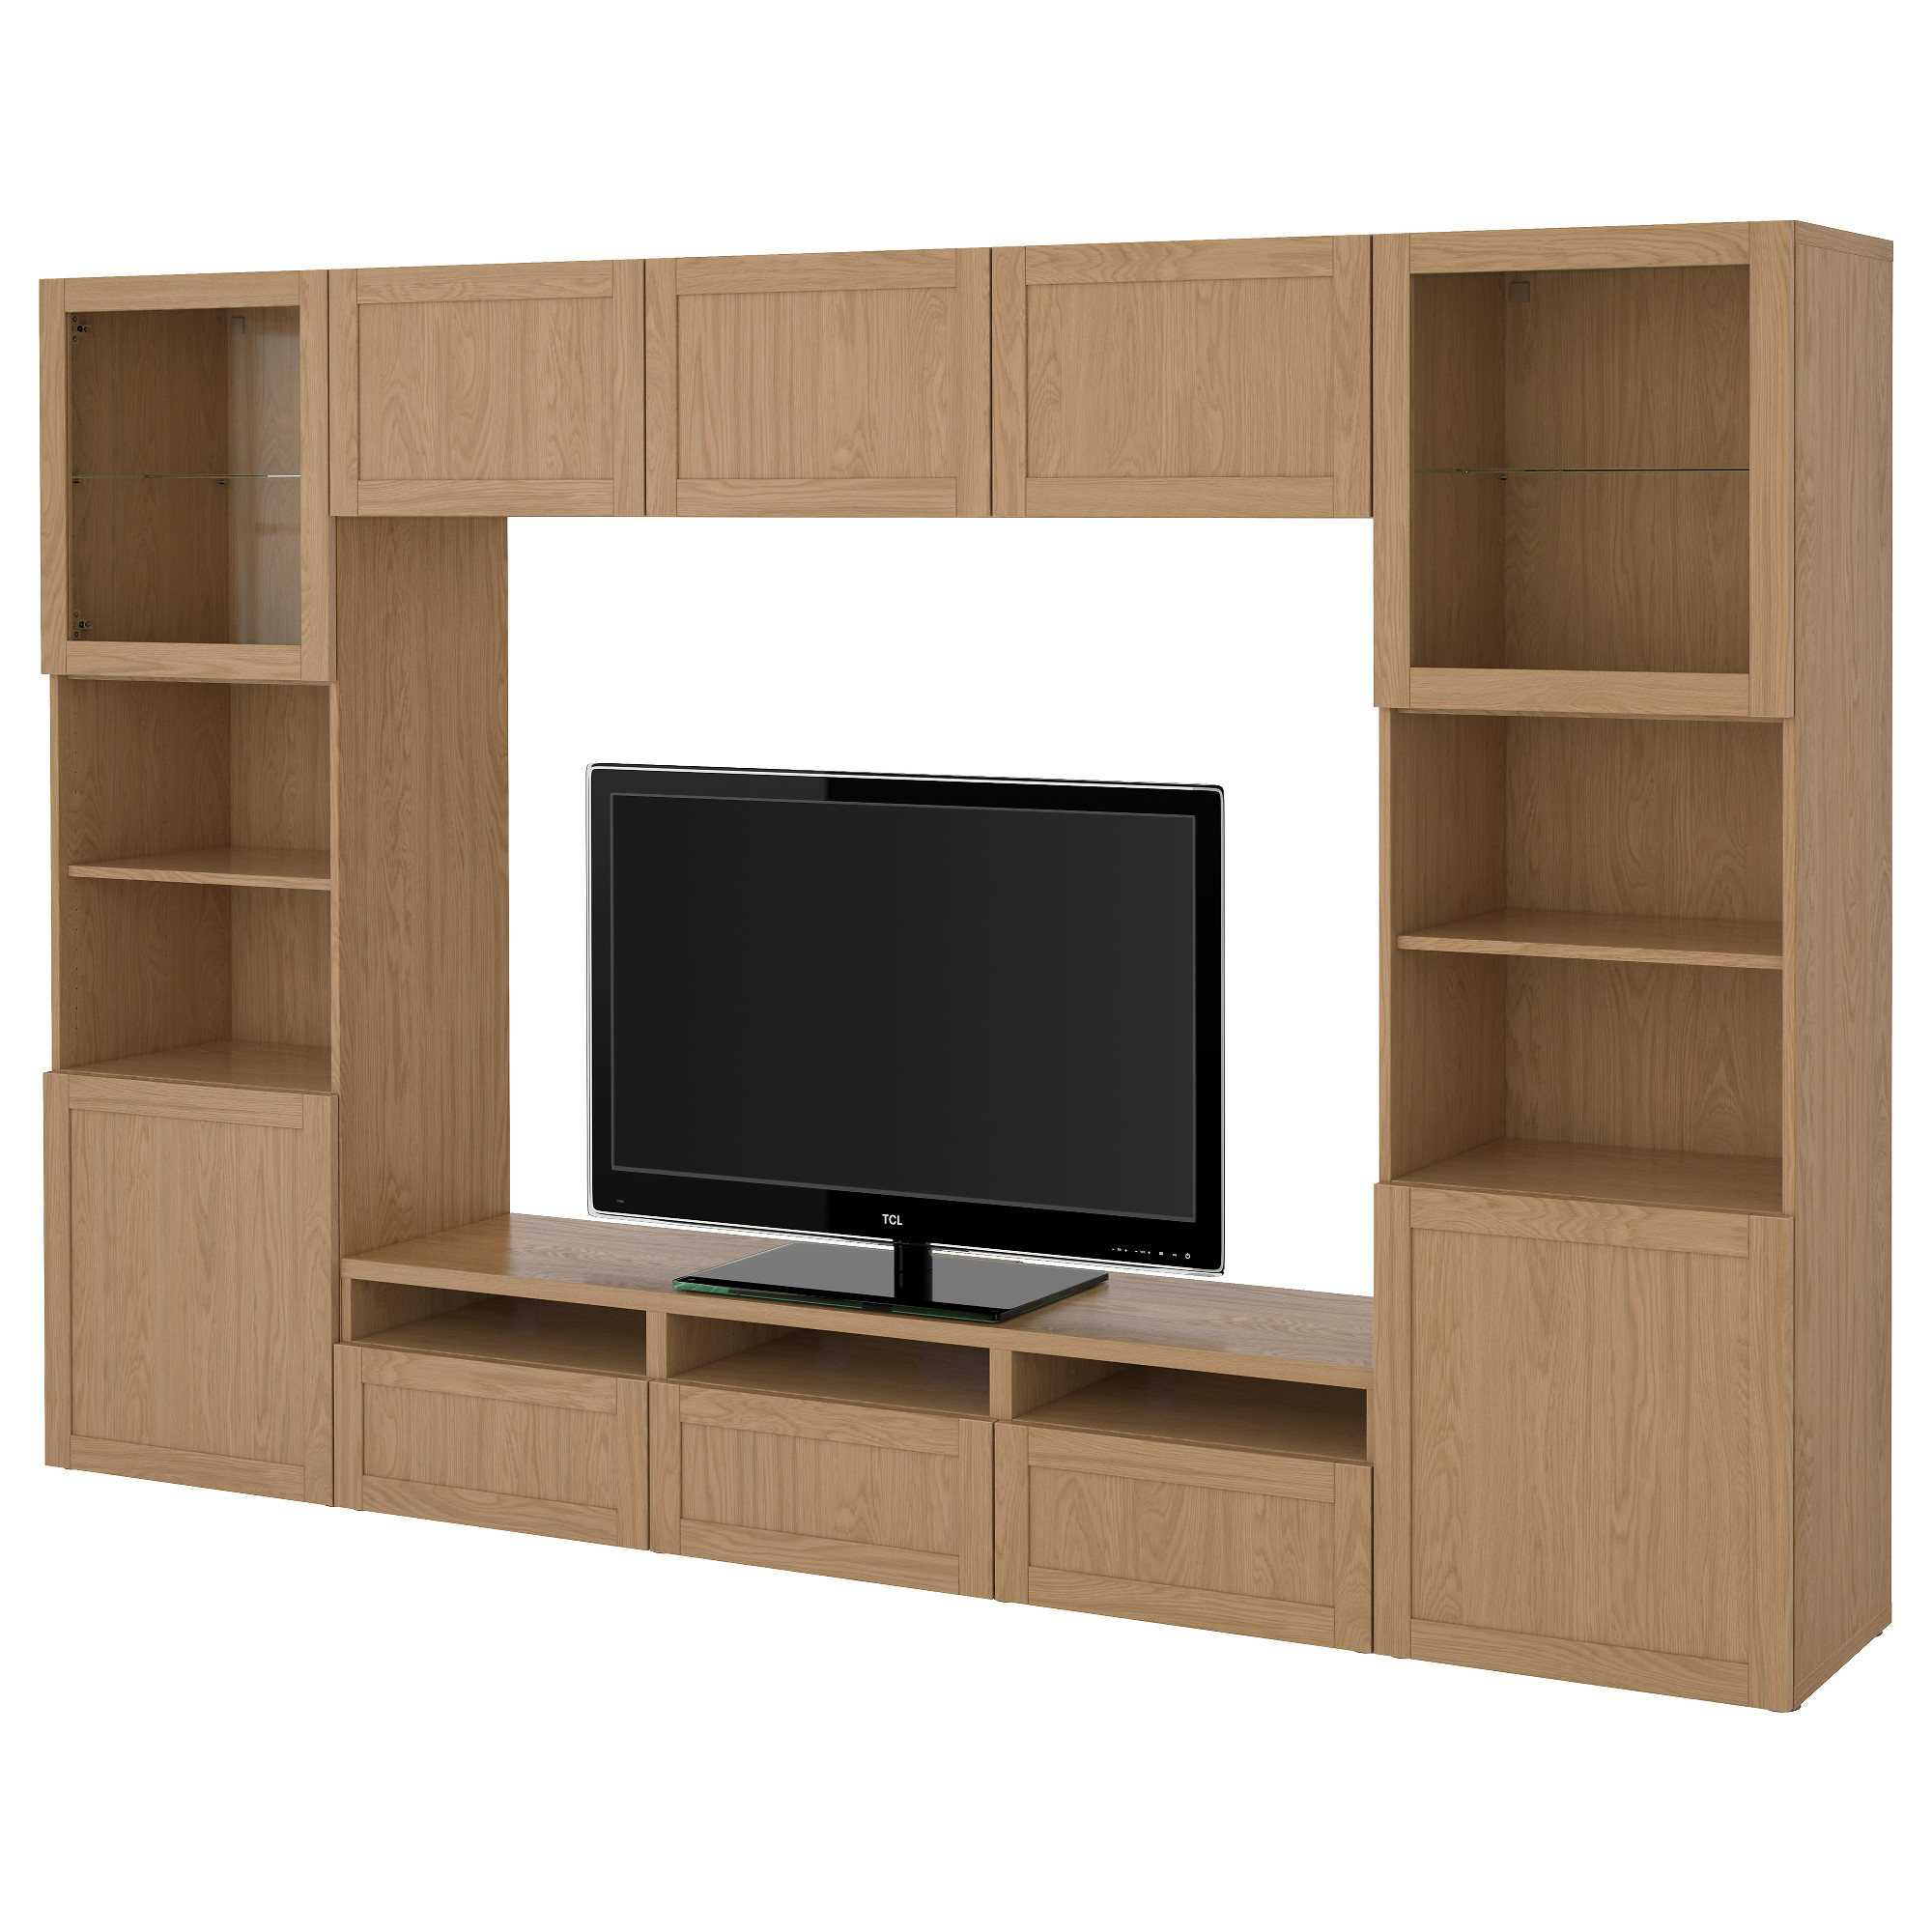 Free Cliparts TV Cupboards, Download Free Clip Art, Free.